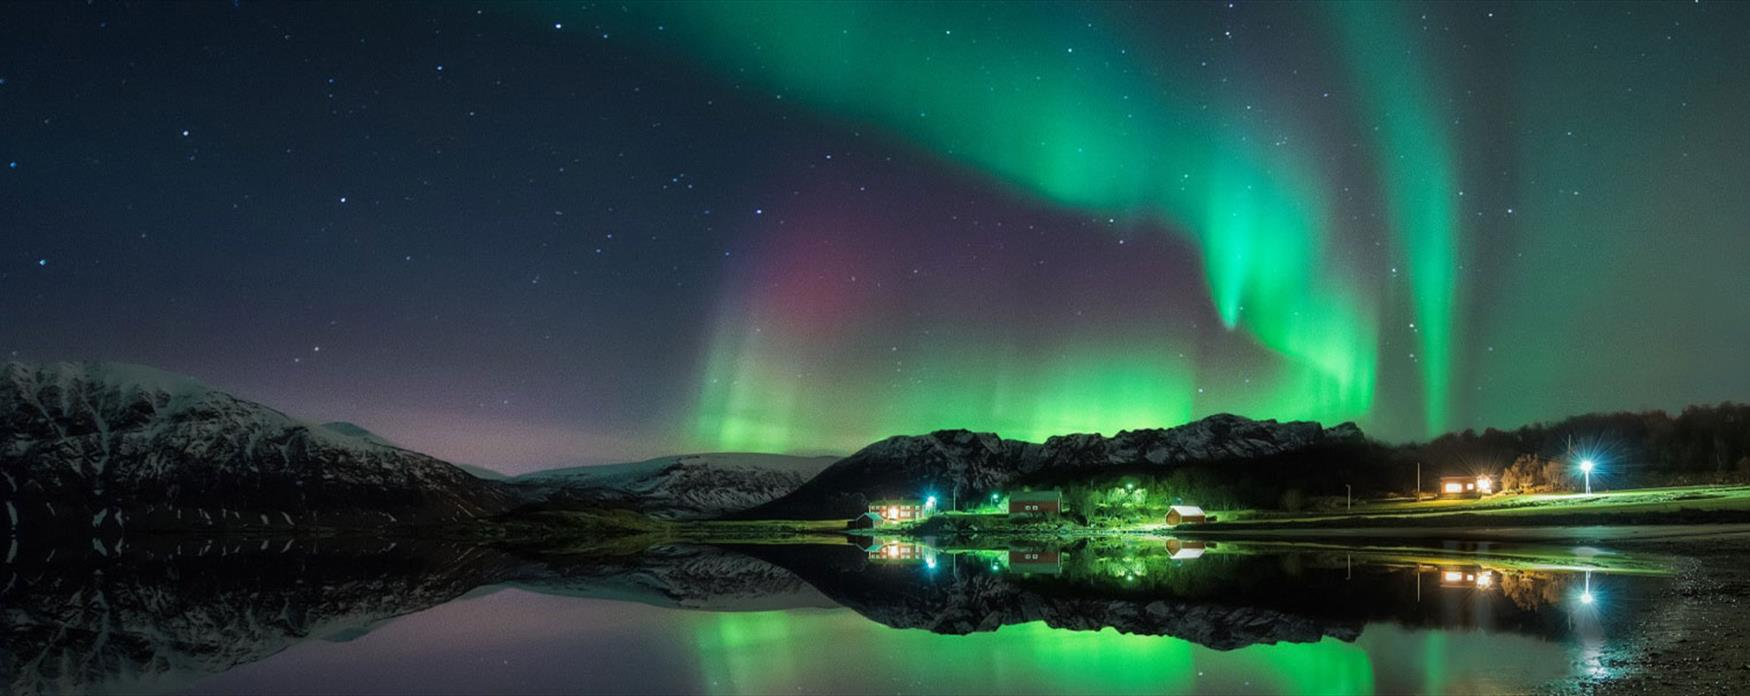 Northern Light in Elgsnes, Harstad.